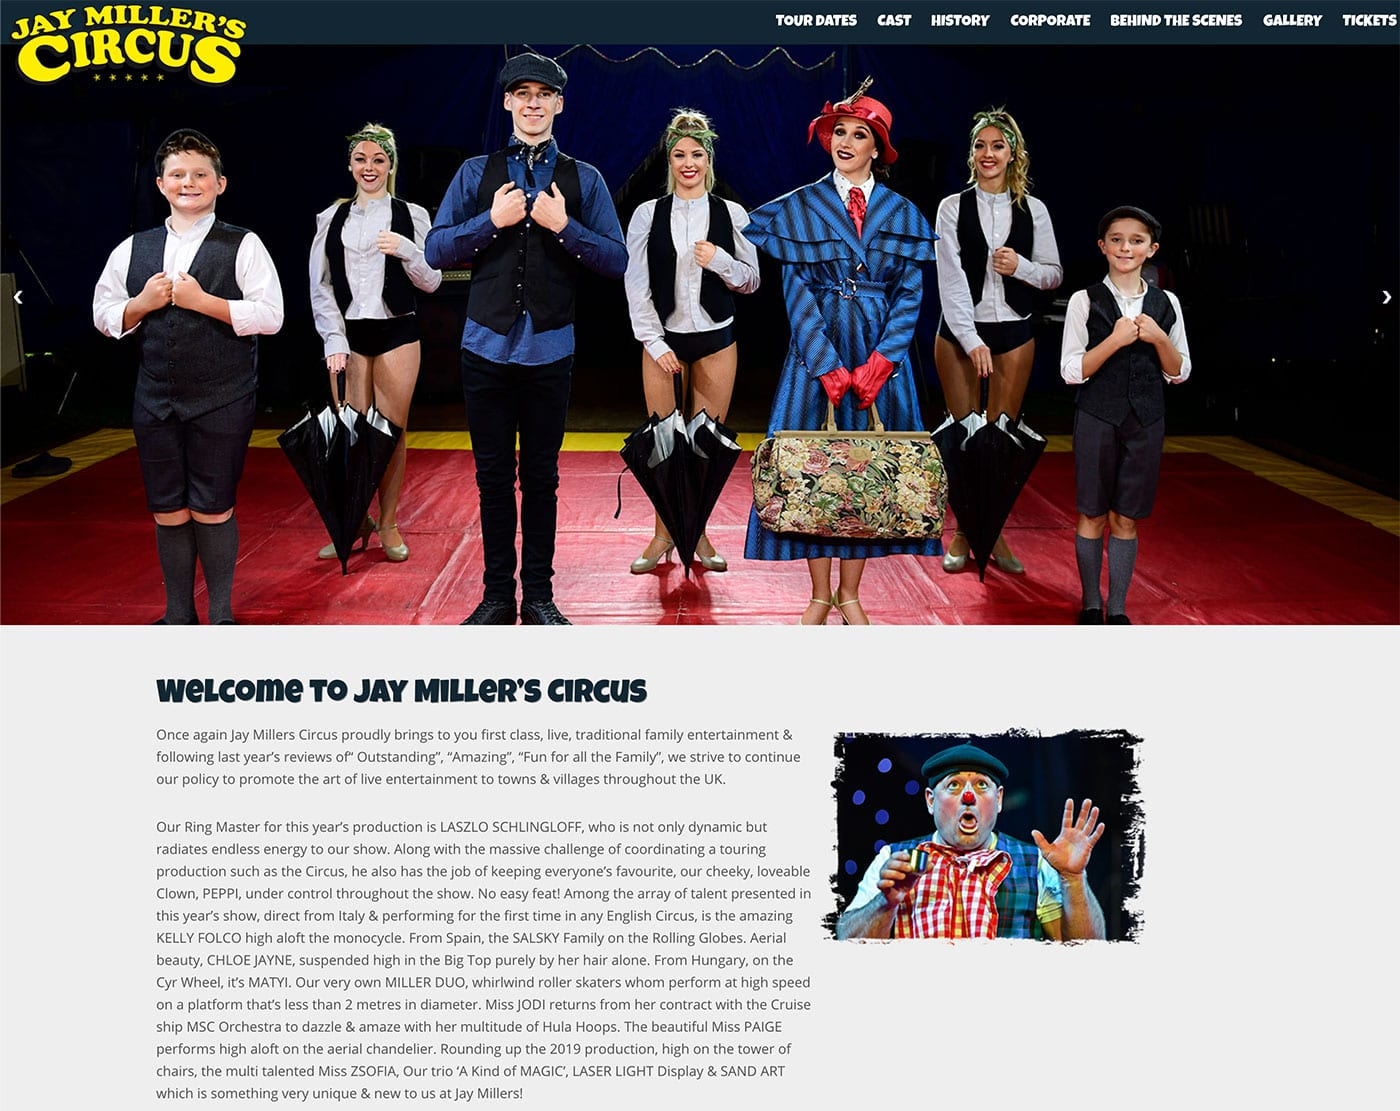 Jay Millers Circus Website 2019